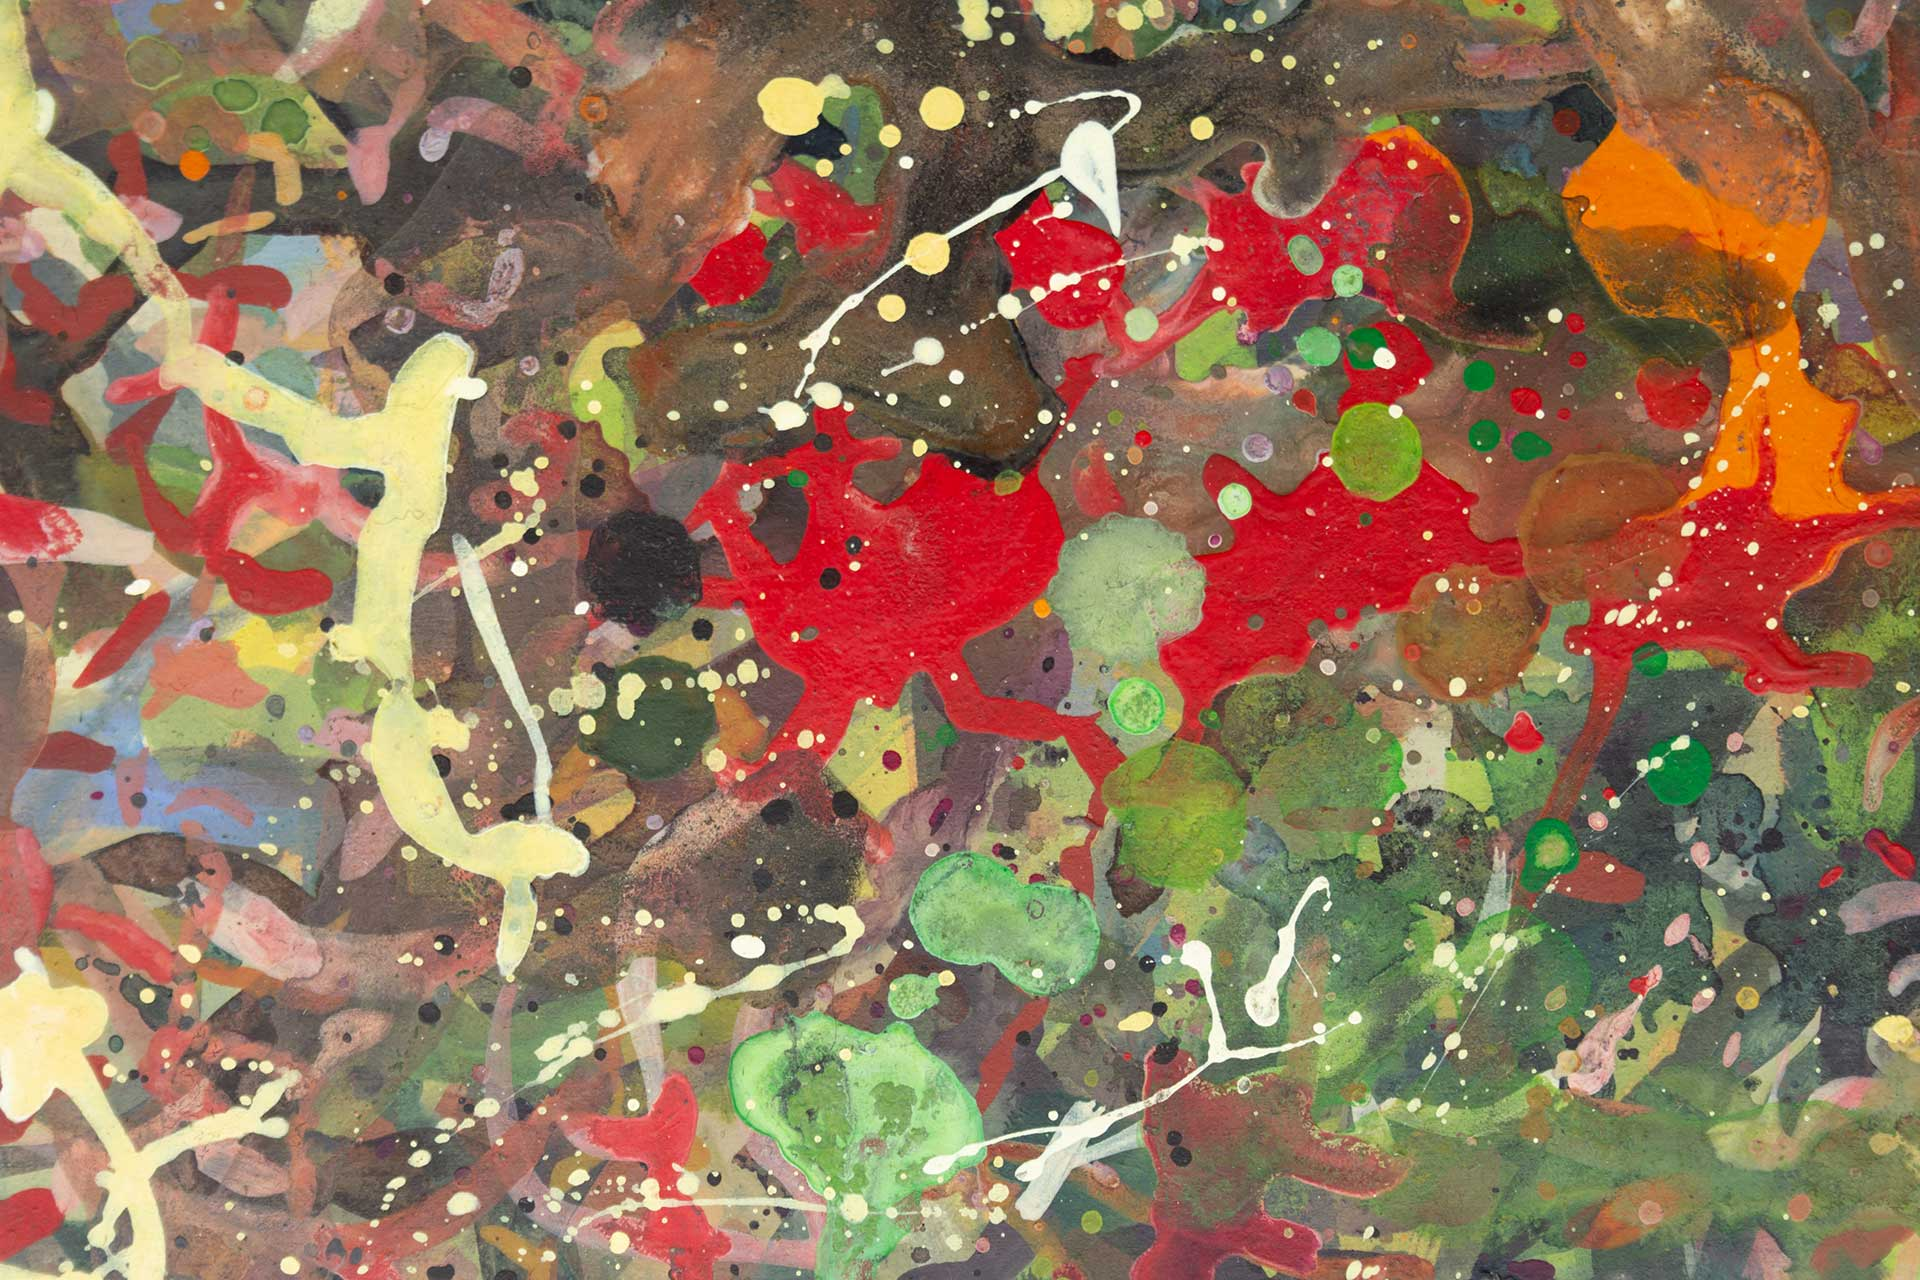 Abstract expressionism painting - Boxing match - Detail 1